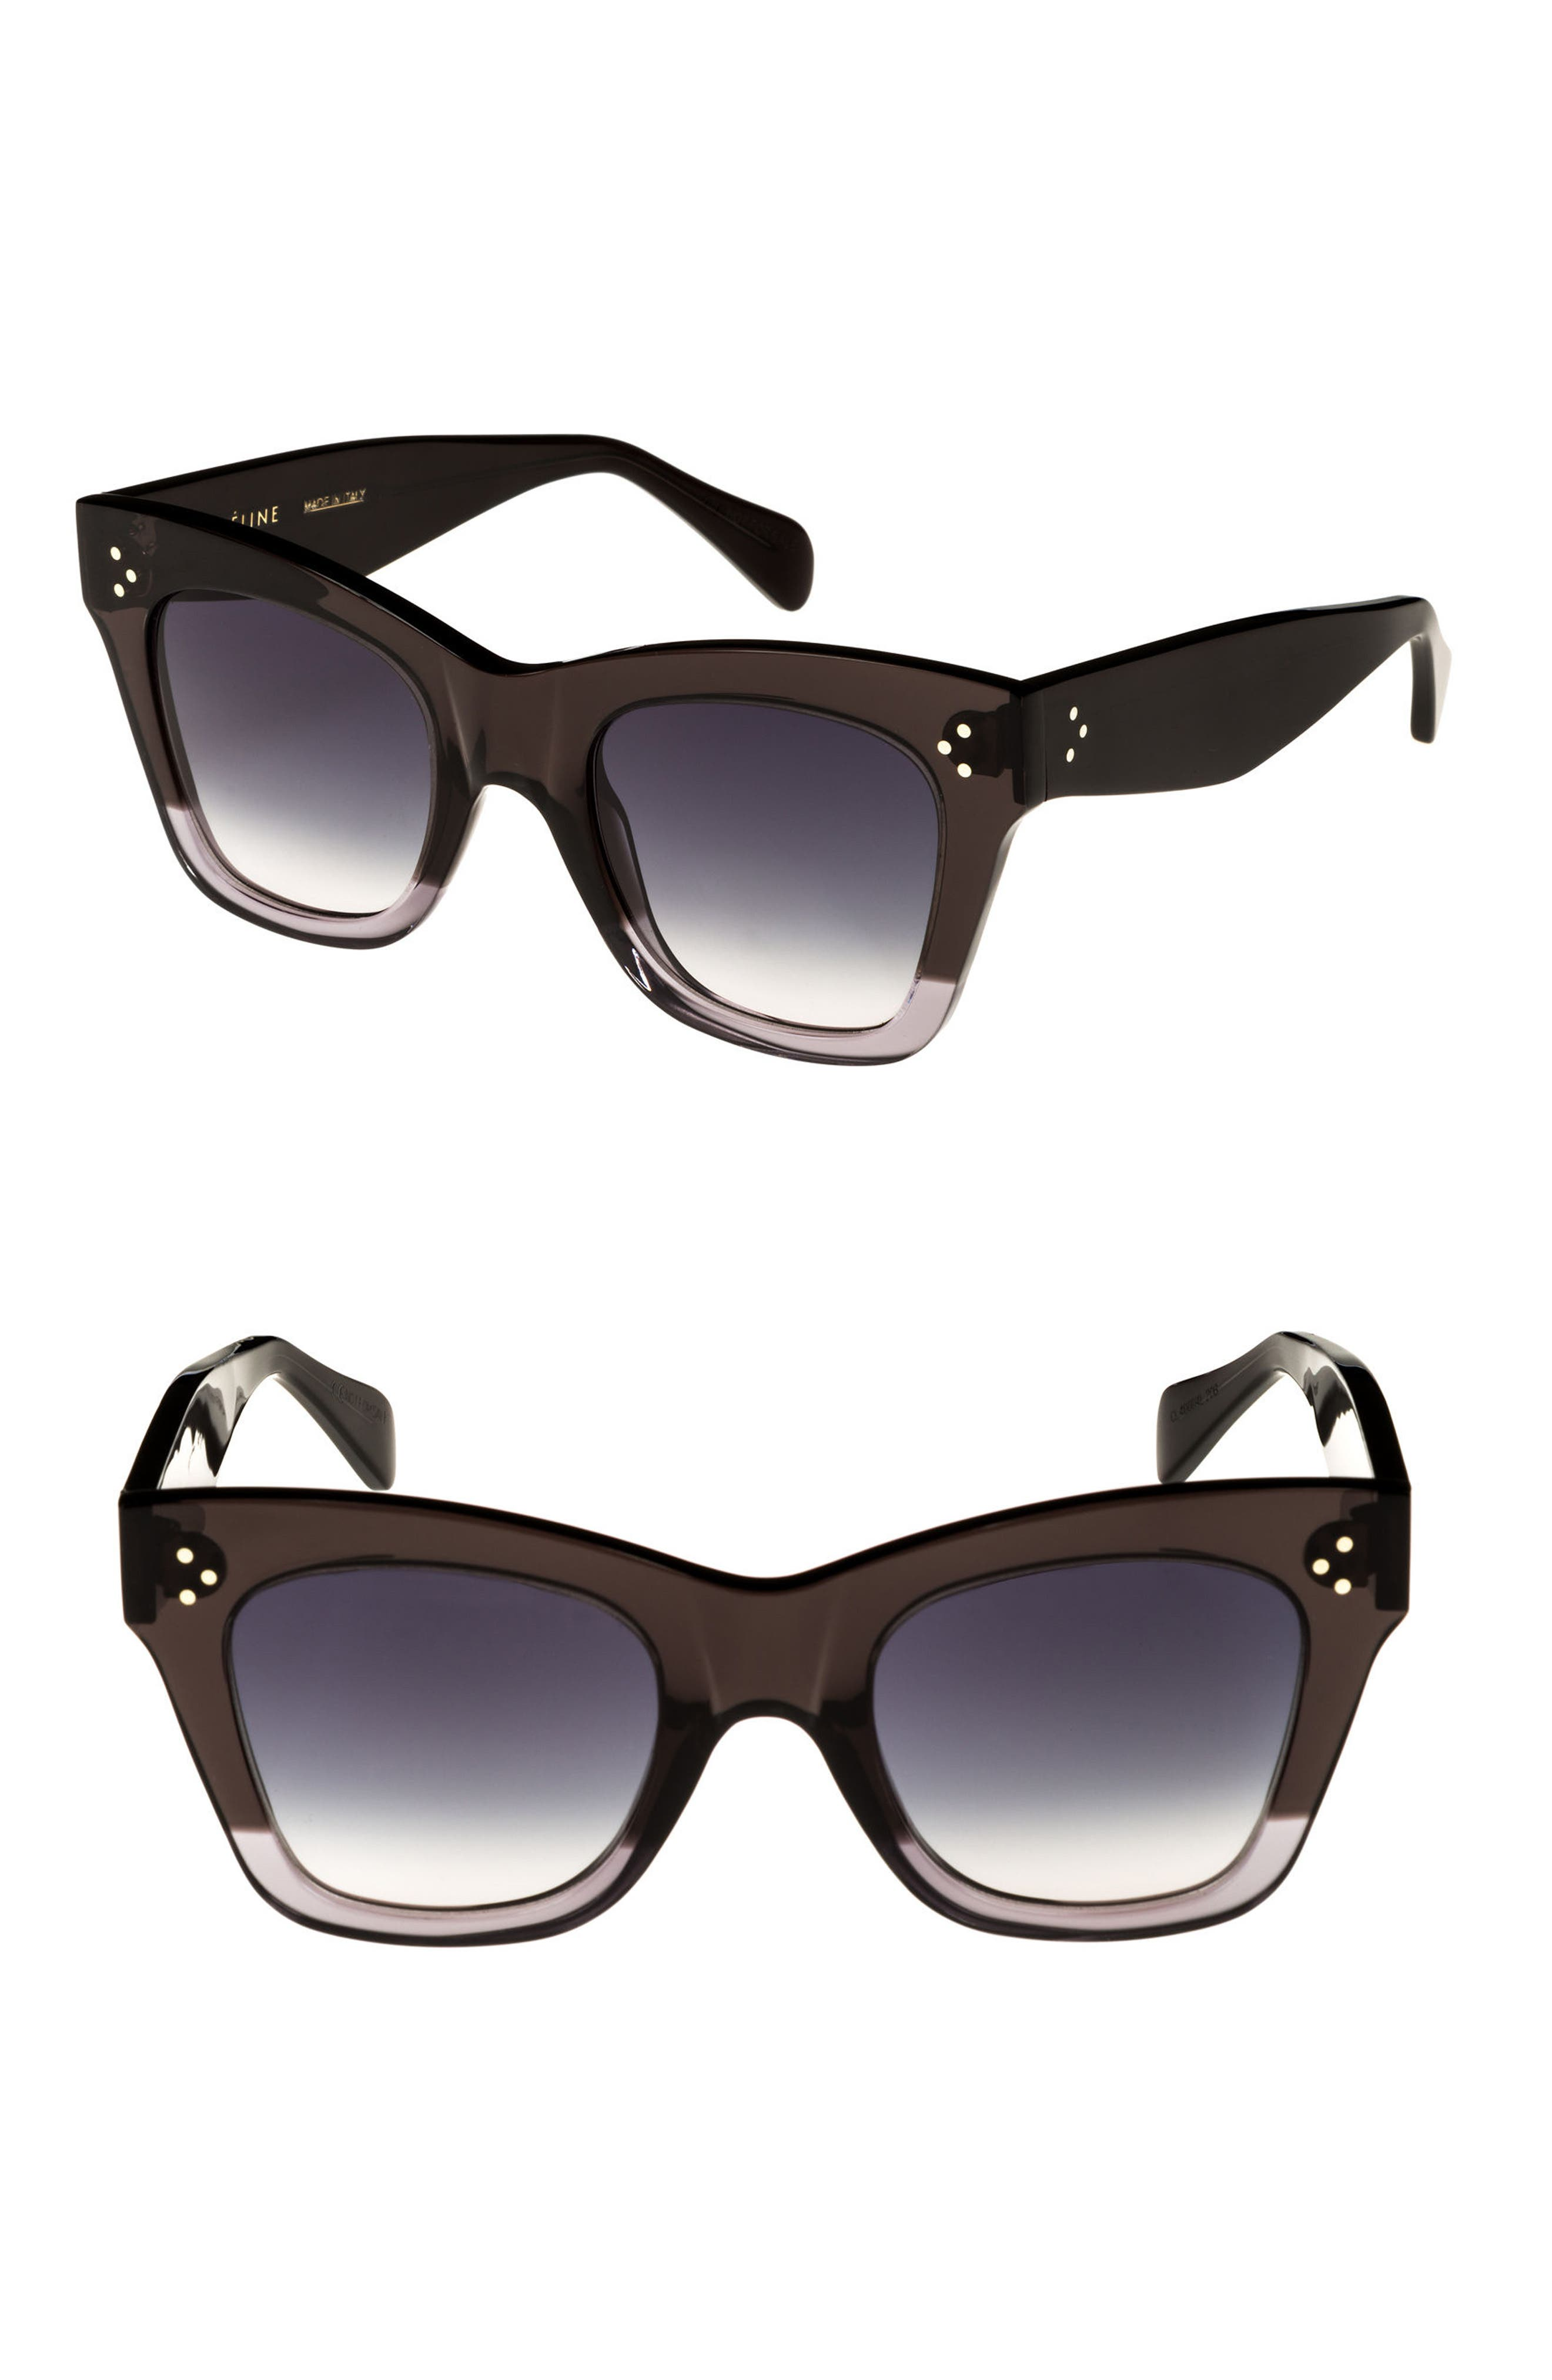 50mm Gradient Butterfly Sunglasses,                         Main,                         color, Dark Grey/ Smoke